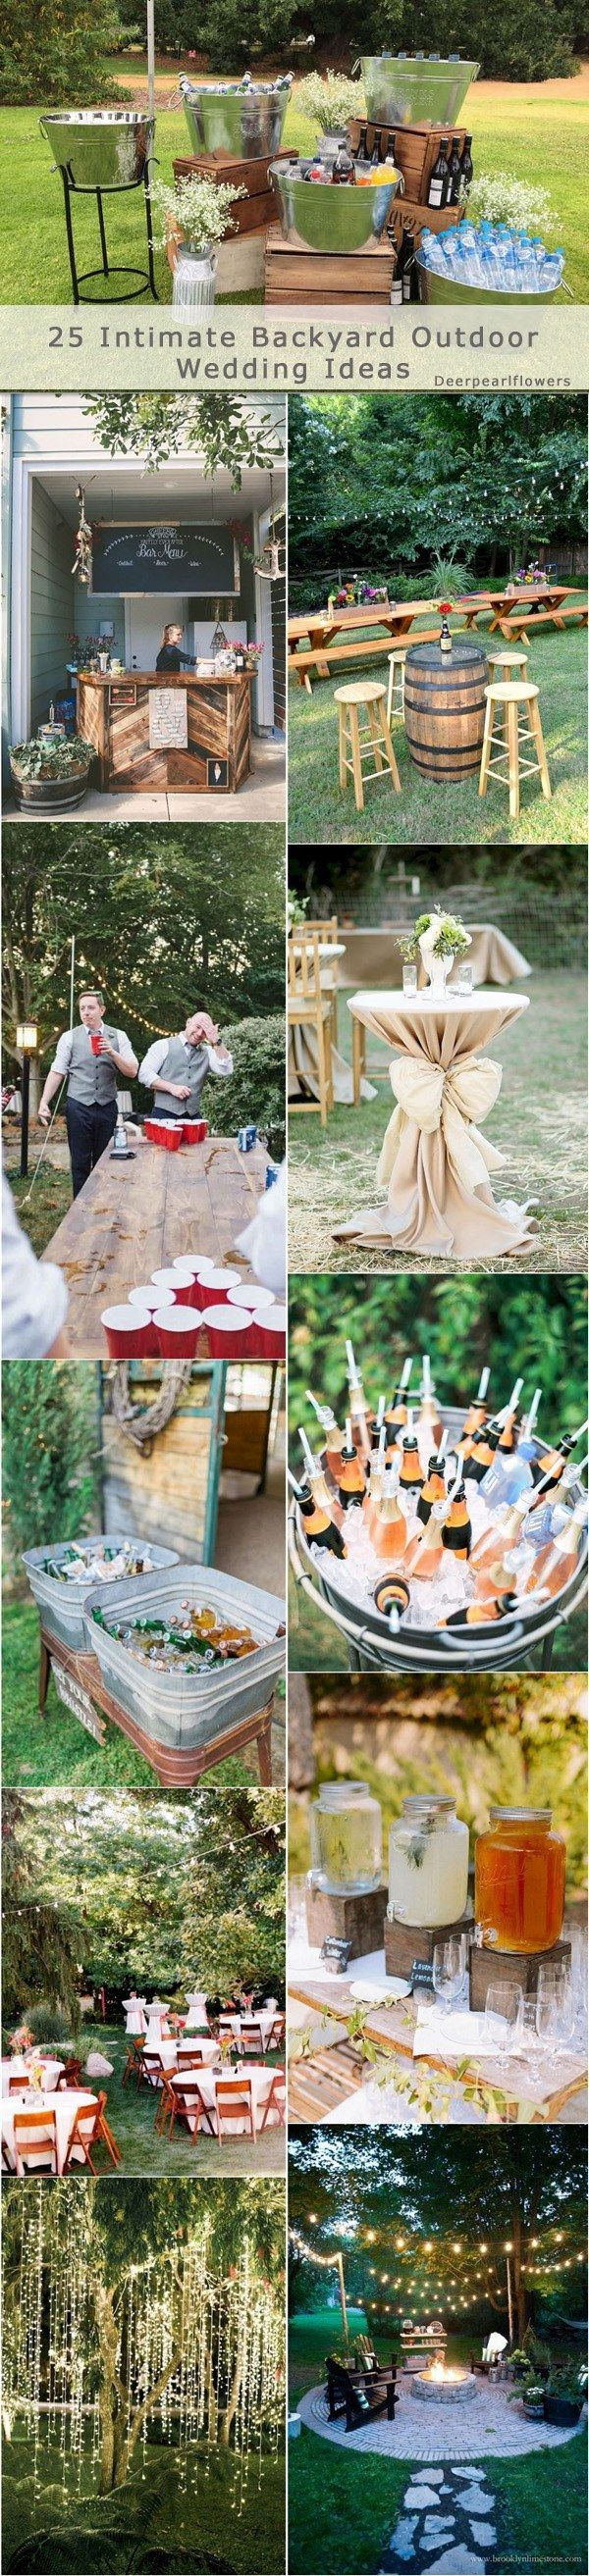 254 best backyard weddings images on pinterest backyard weddings